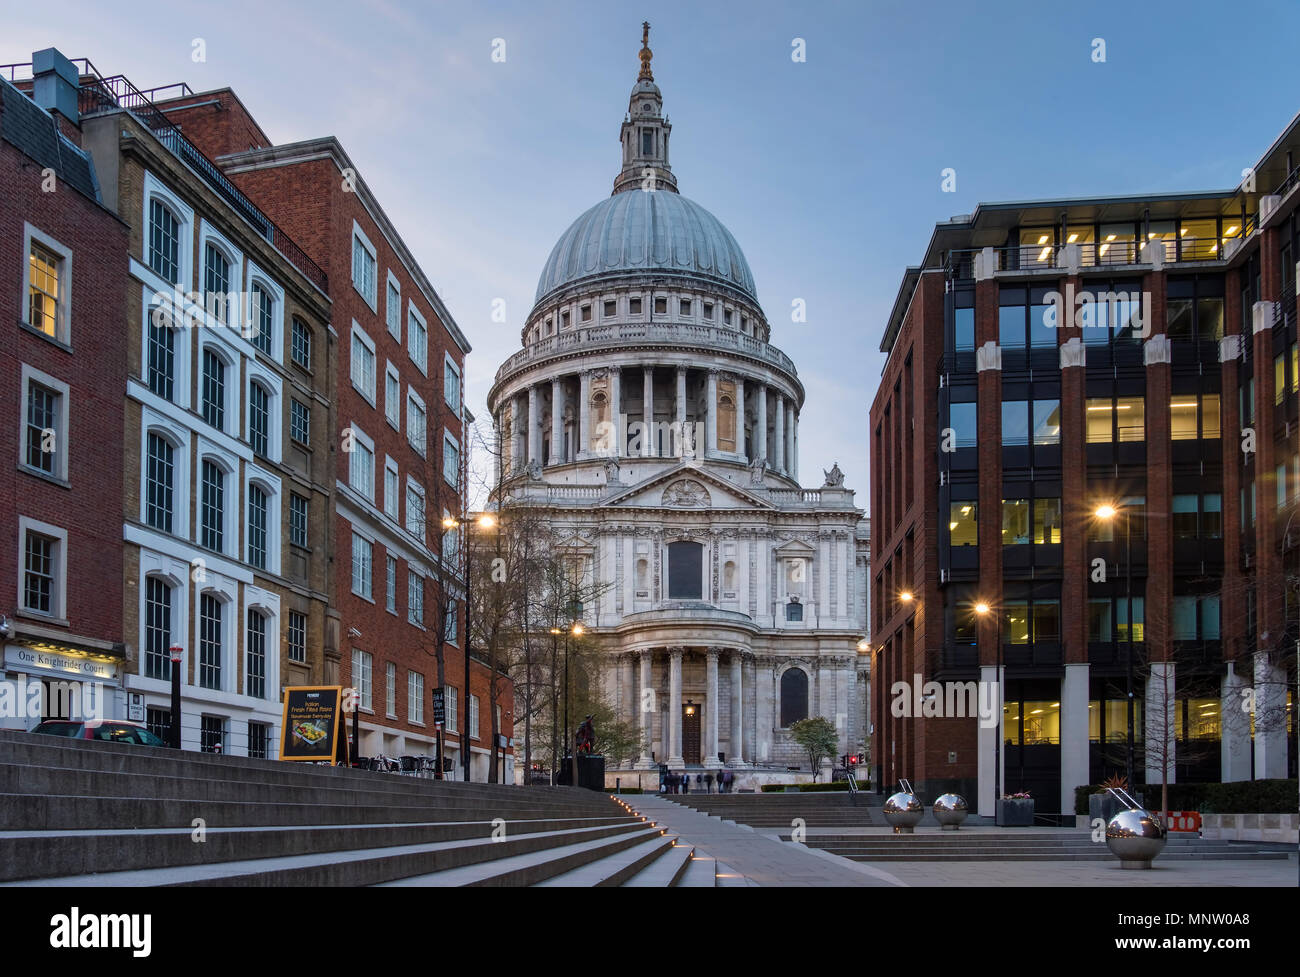 St Pauls Cathedral from Sermon Lane, London, England, UK - Stock Image